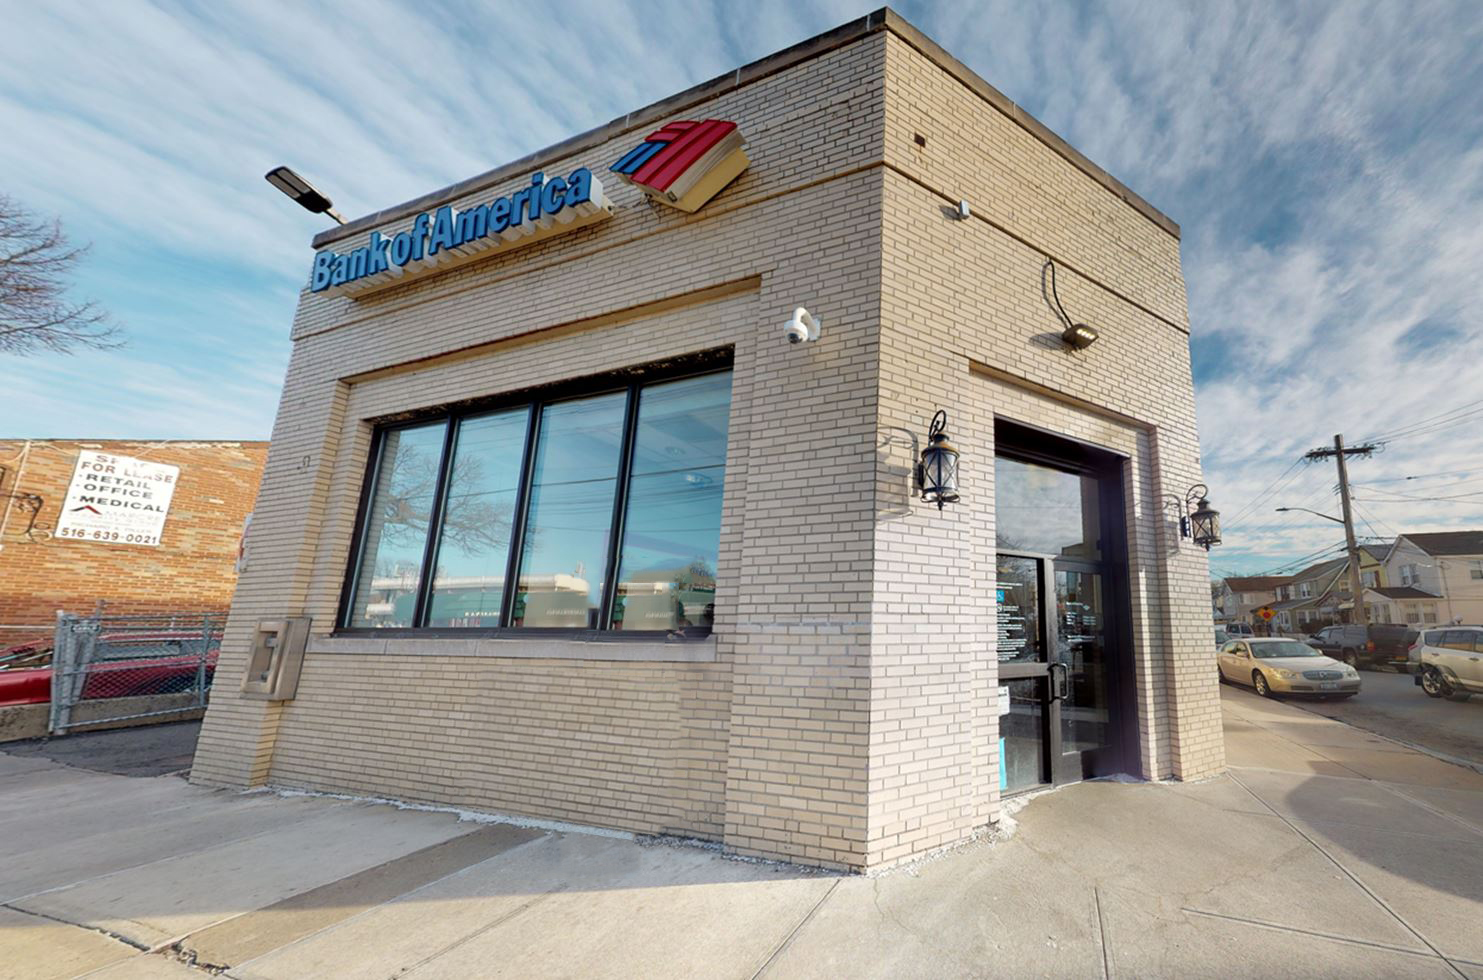 Bank of America financial center with drive-thru ATM   20502 Linden Blvd, Saint Albans, NY 11412